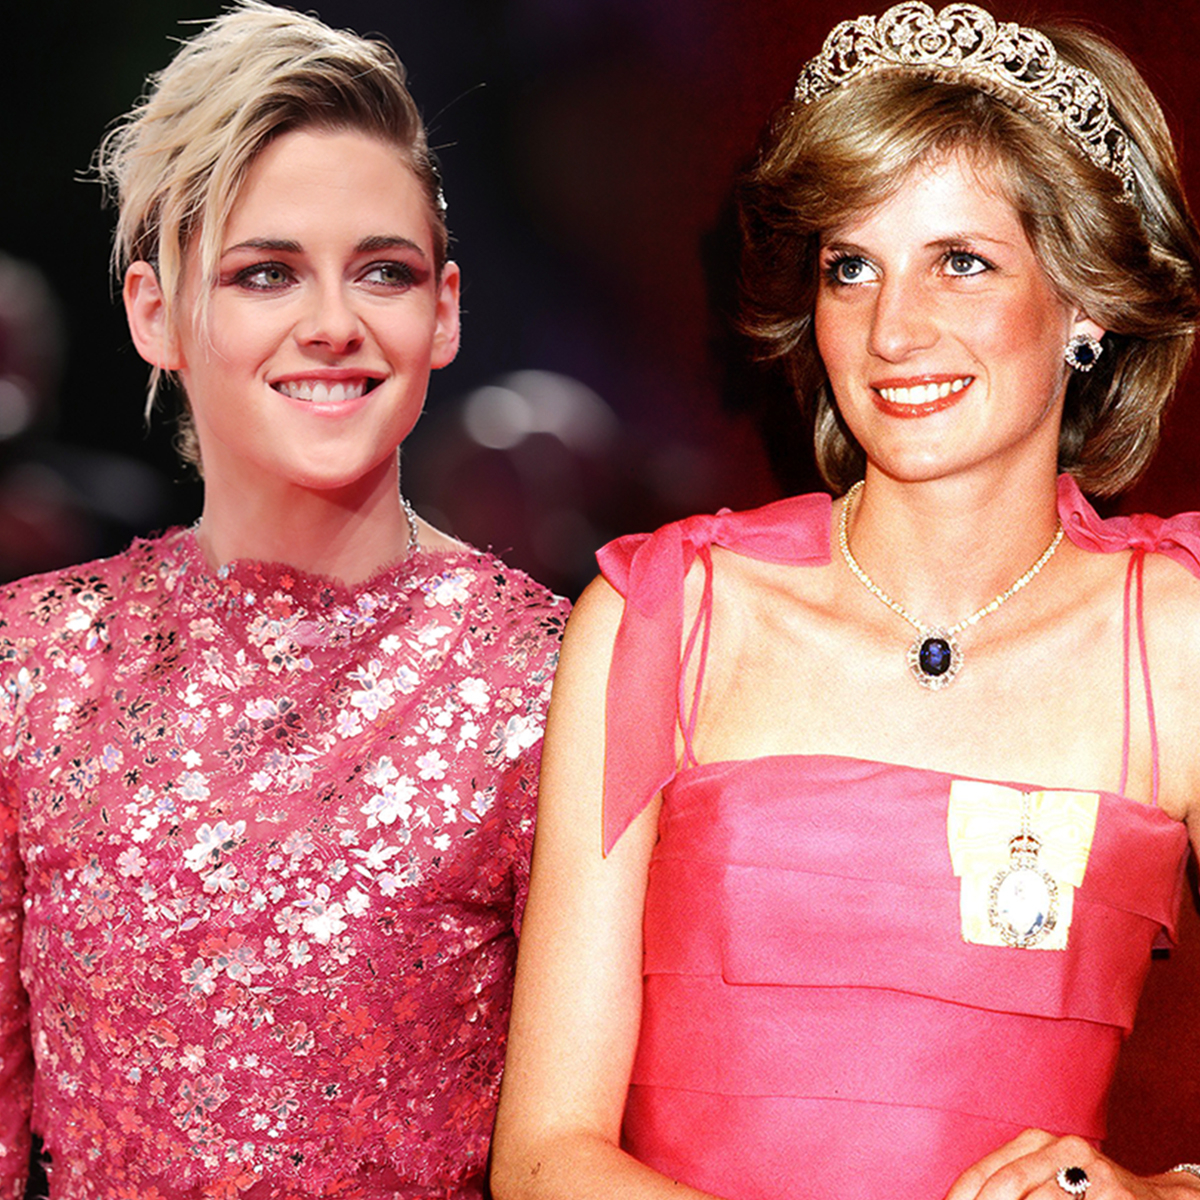 Kristen Stewart Bears a Striking Resemblance to Princess Diana in New Spencer Photos